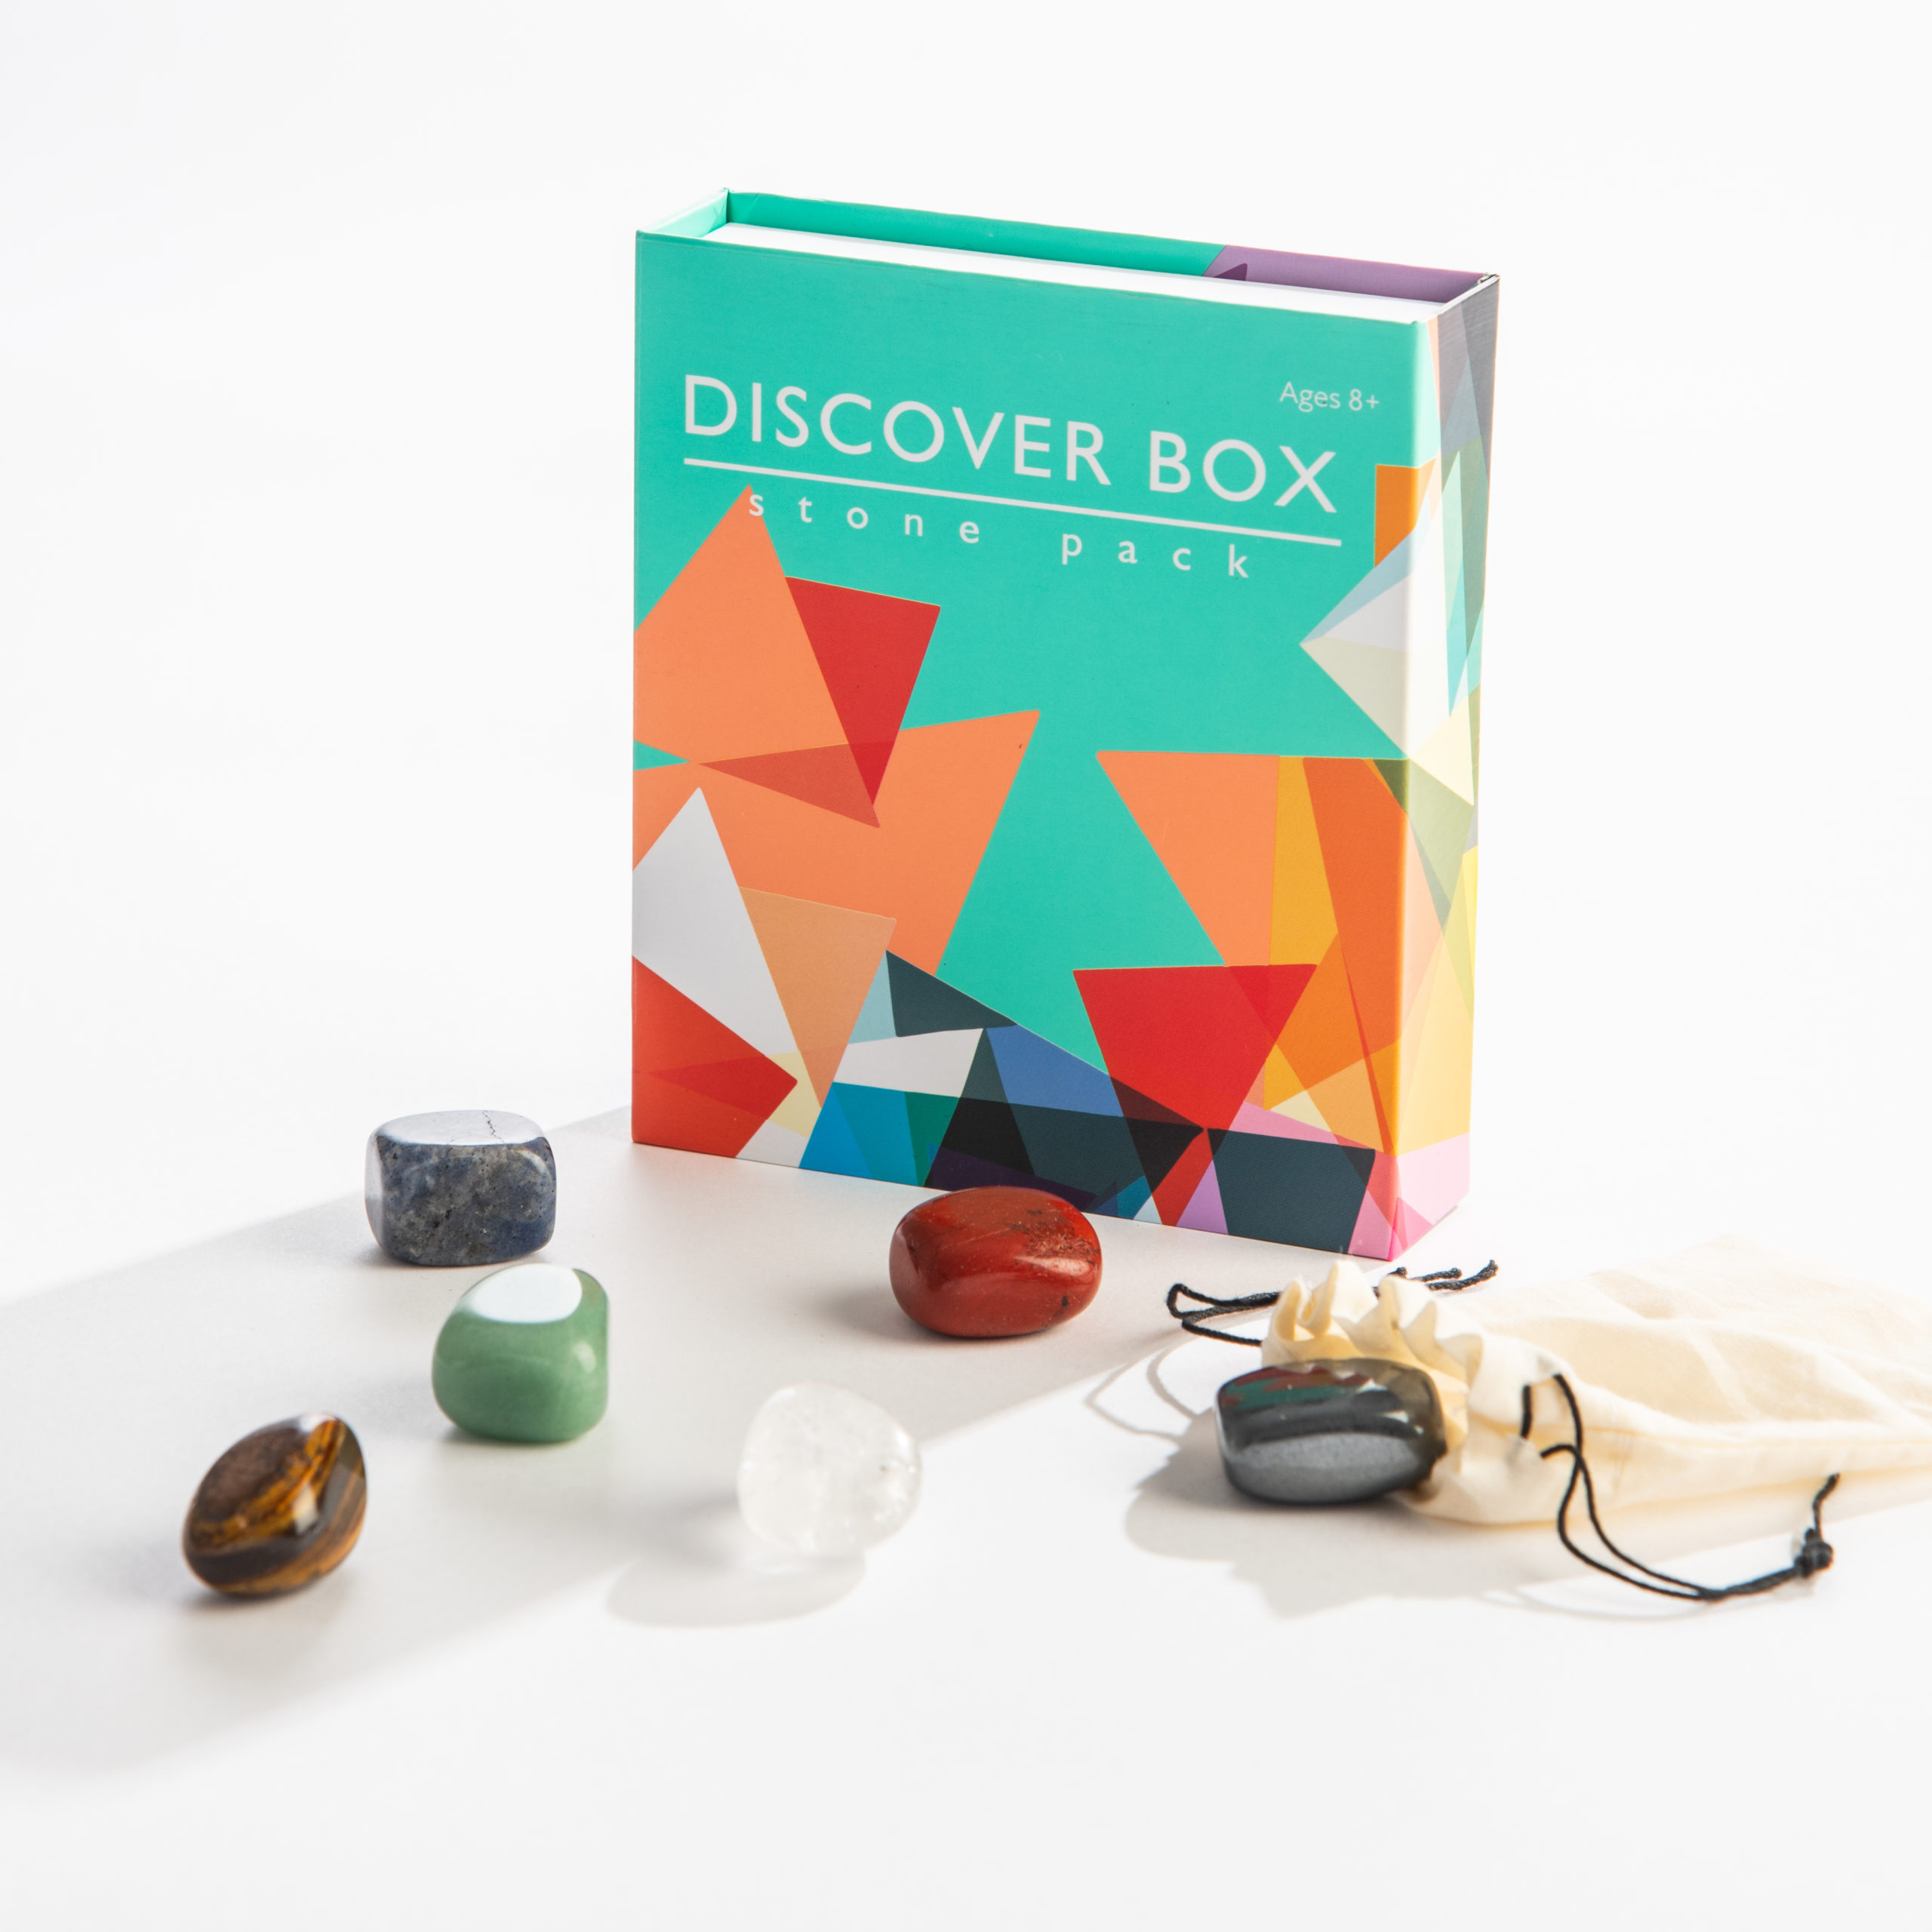 Discover box of stones